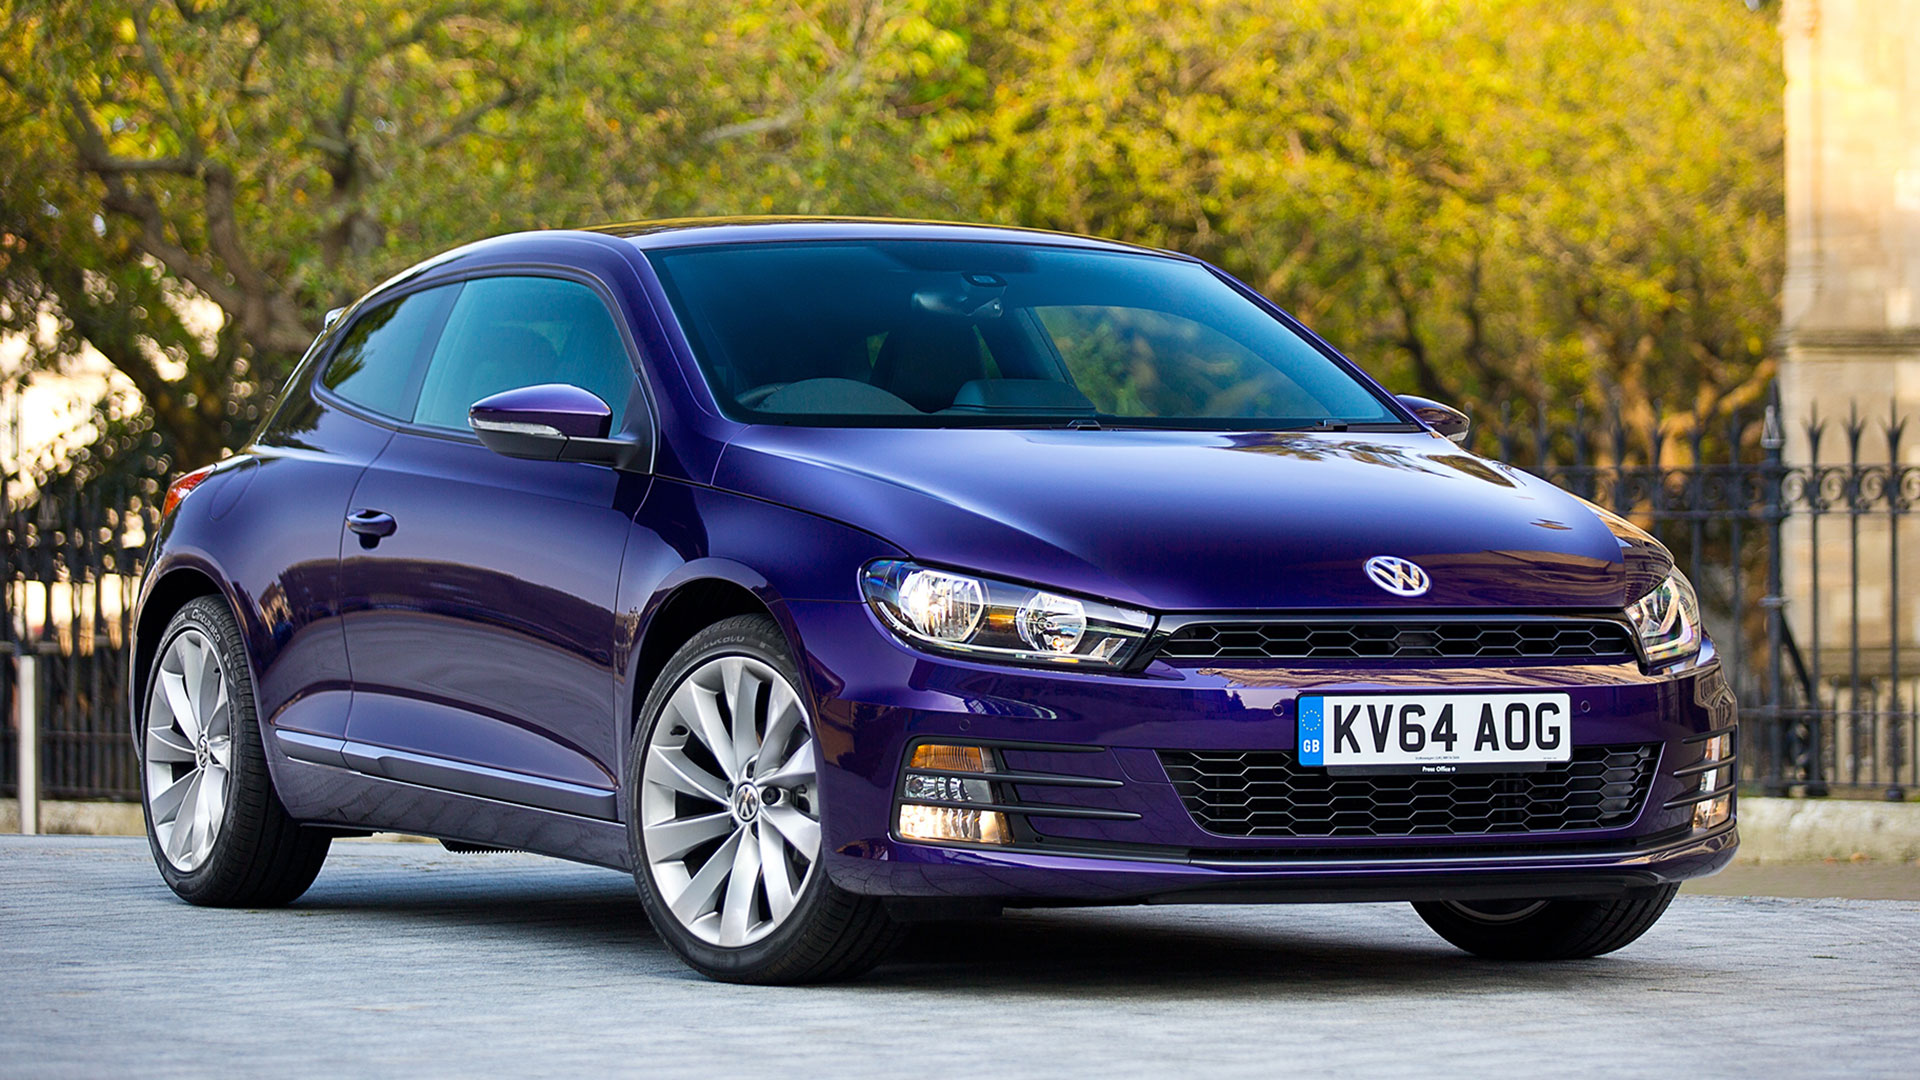 Find Used Volkswagen Scirocco Cars For Sale On Auto Trader Uk